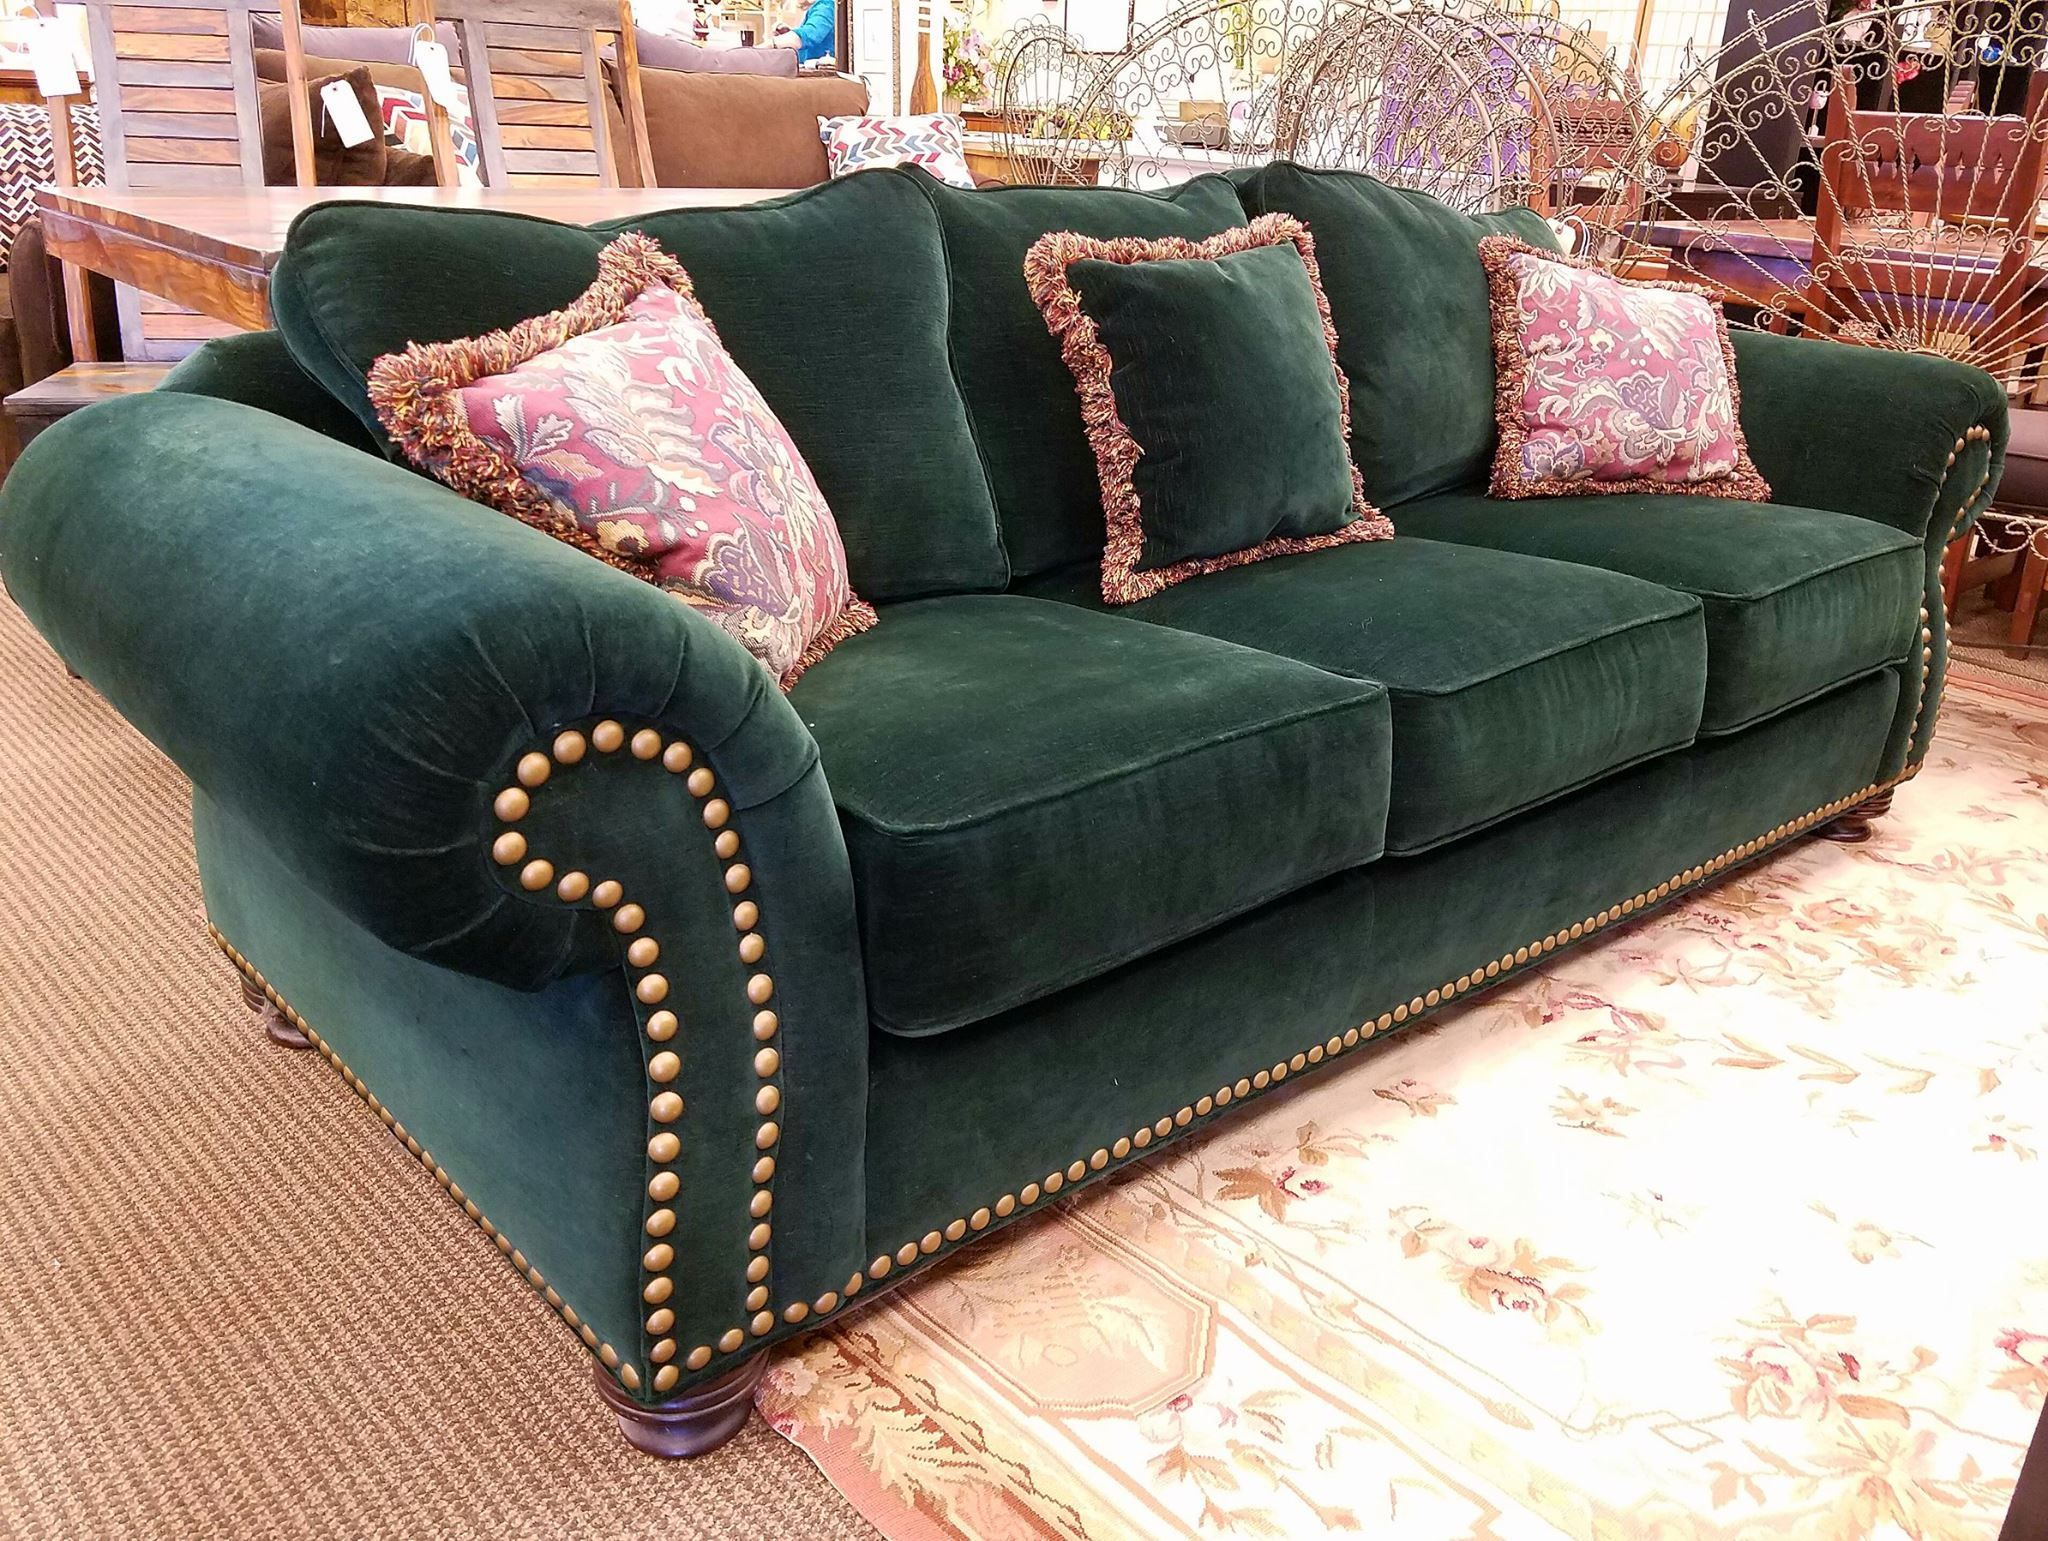 We have this Green Sofa with metal studs detailed on the upholstery ...